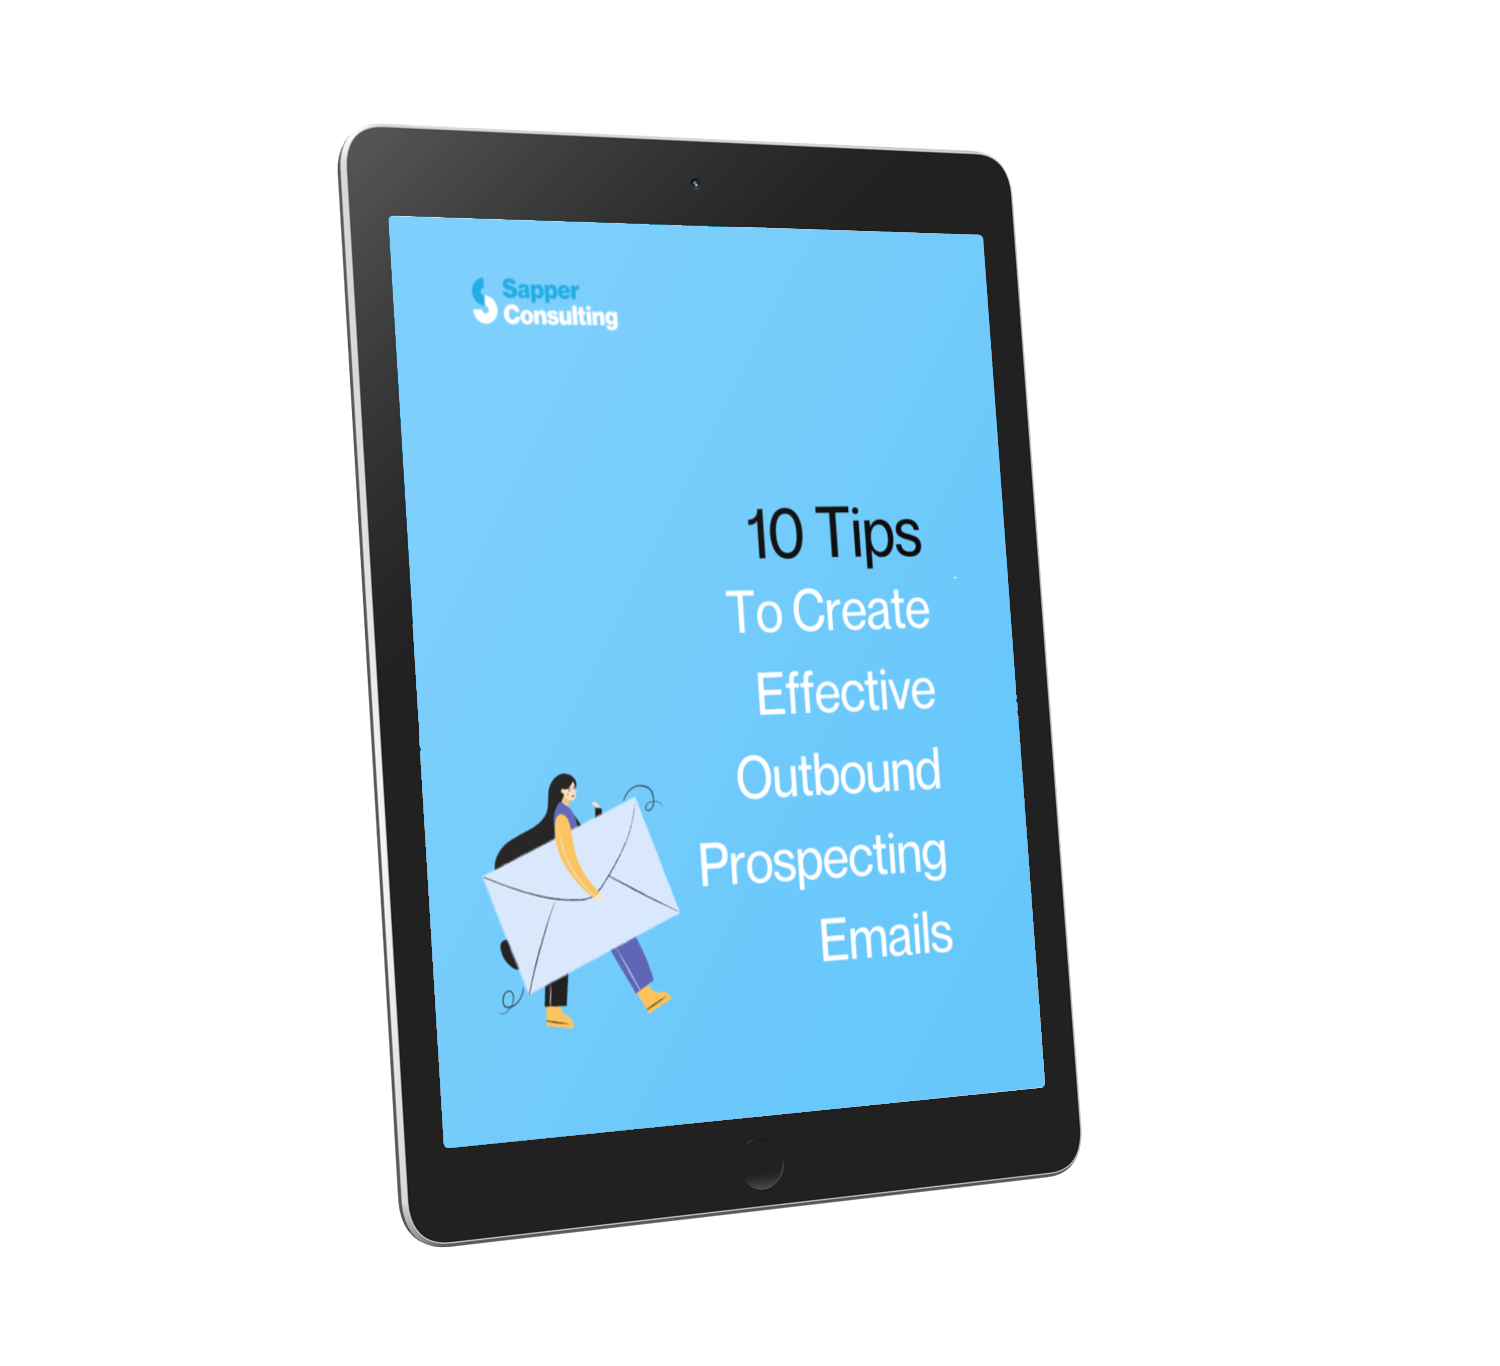 10 Steps to Creating Effective Outbound Prospecting Emails